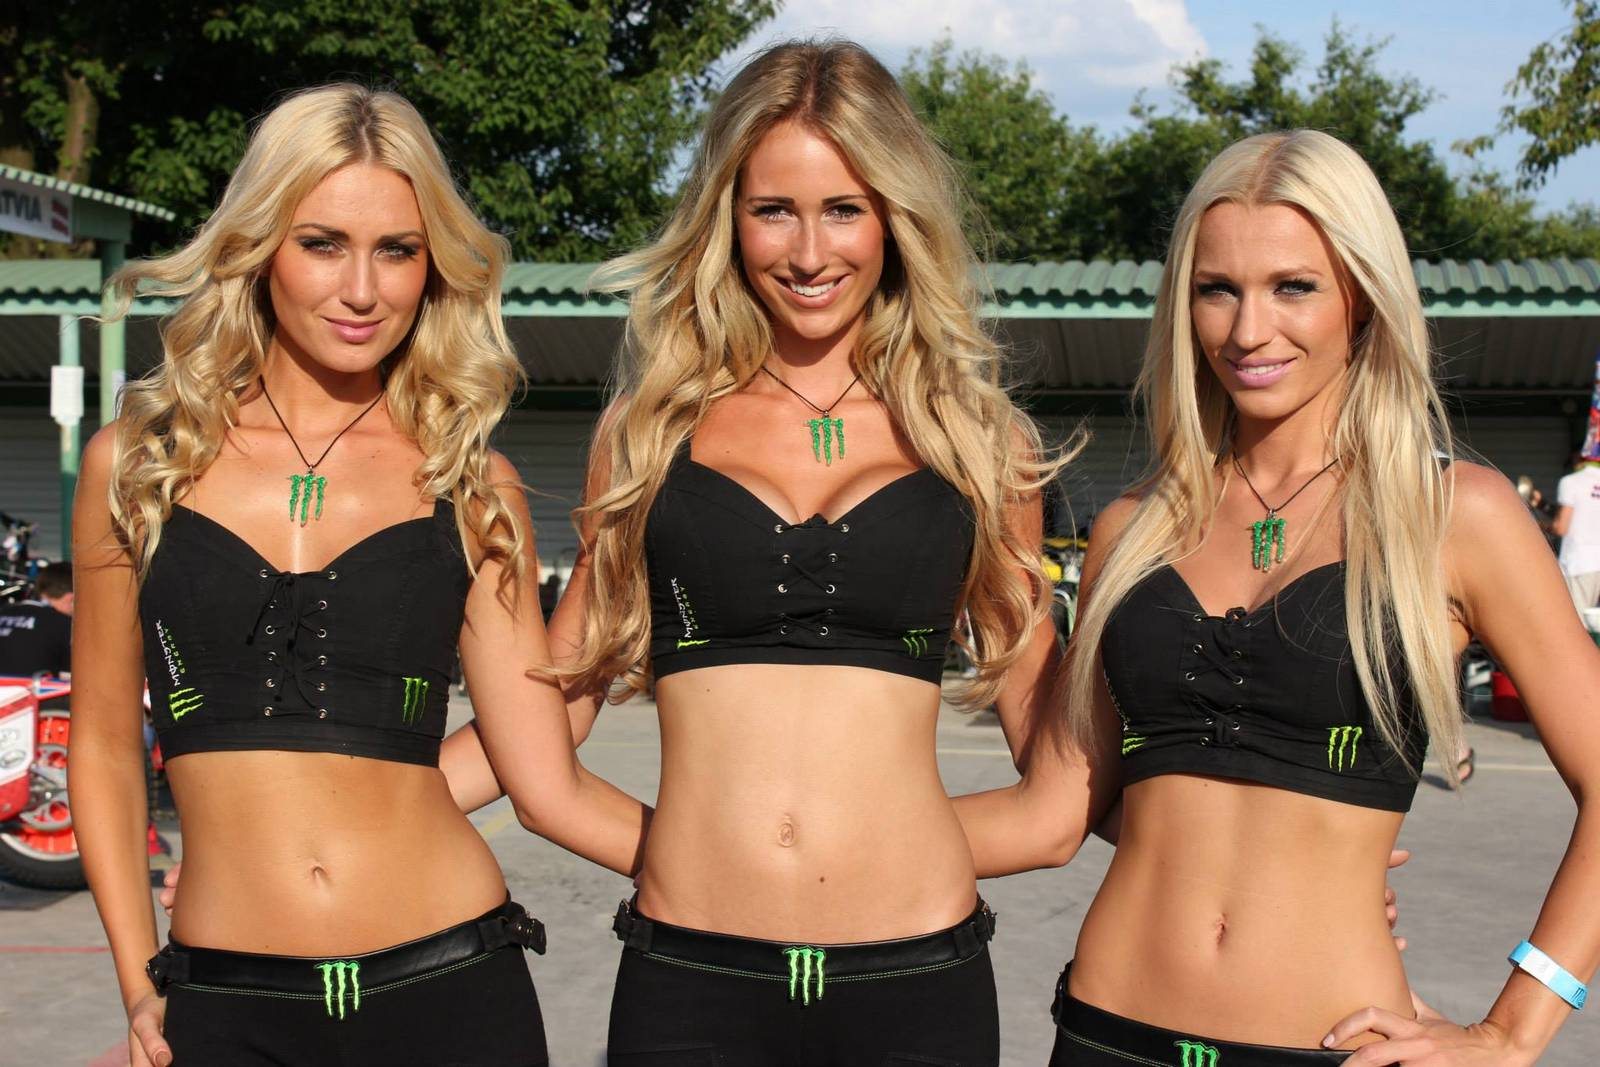 Hot monster energy girls fuck sexy gallery